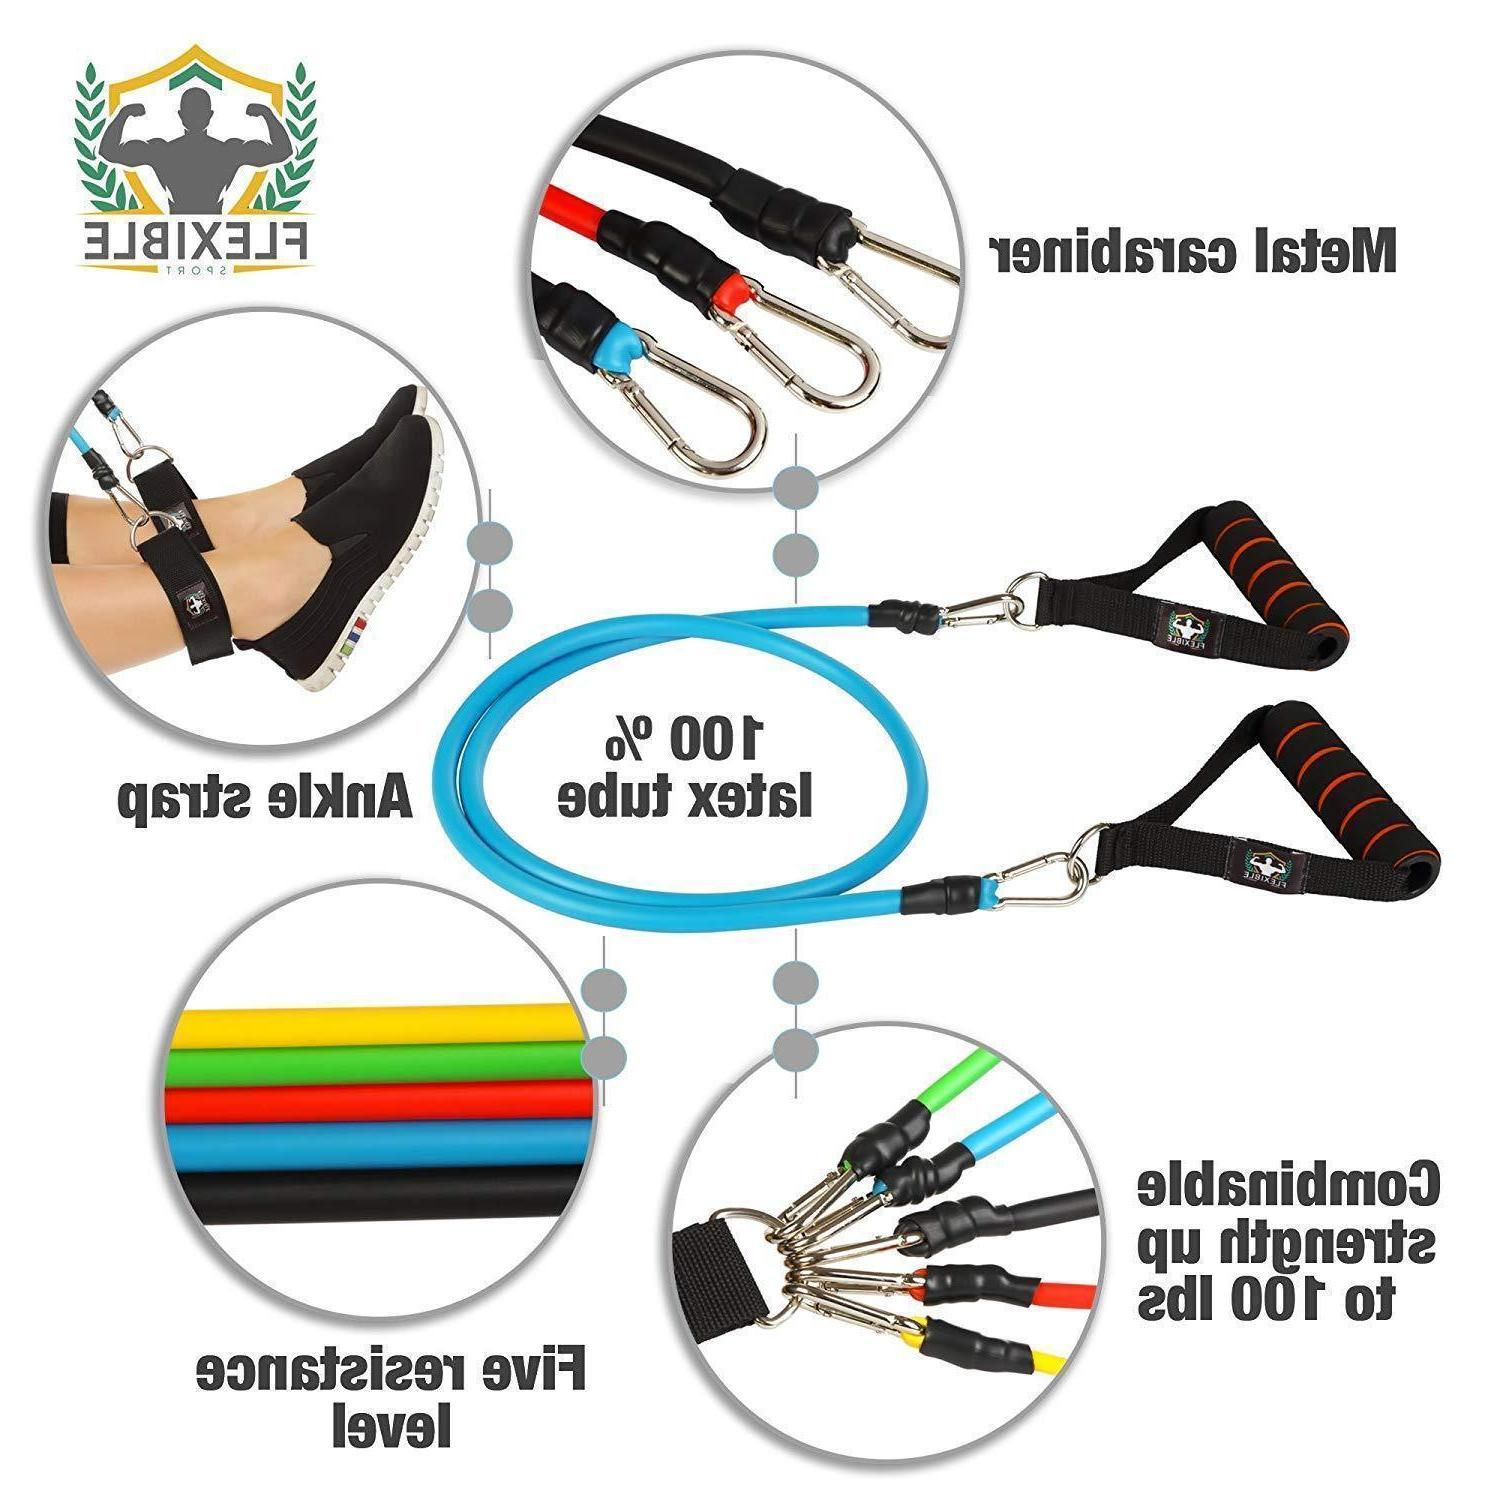 Premium Band Abs Fitness Pilates Bands